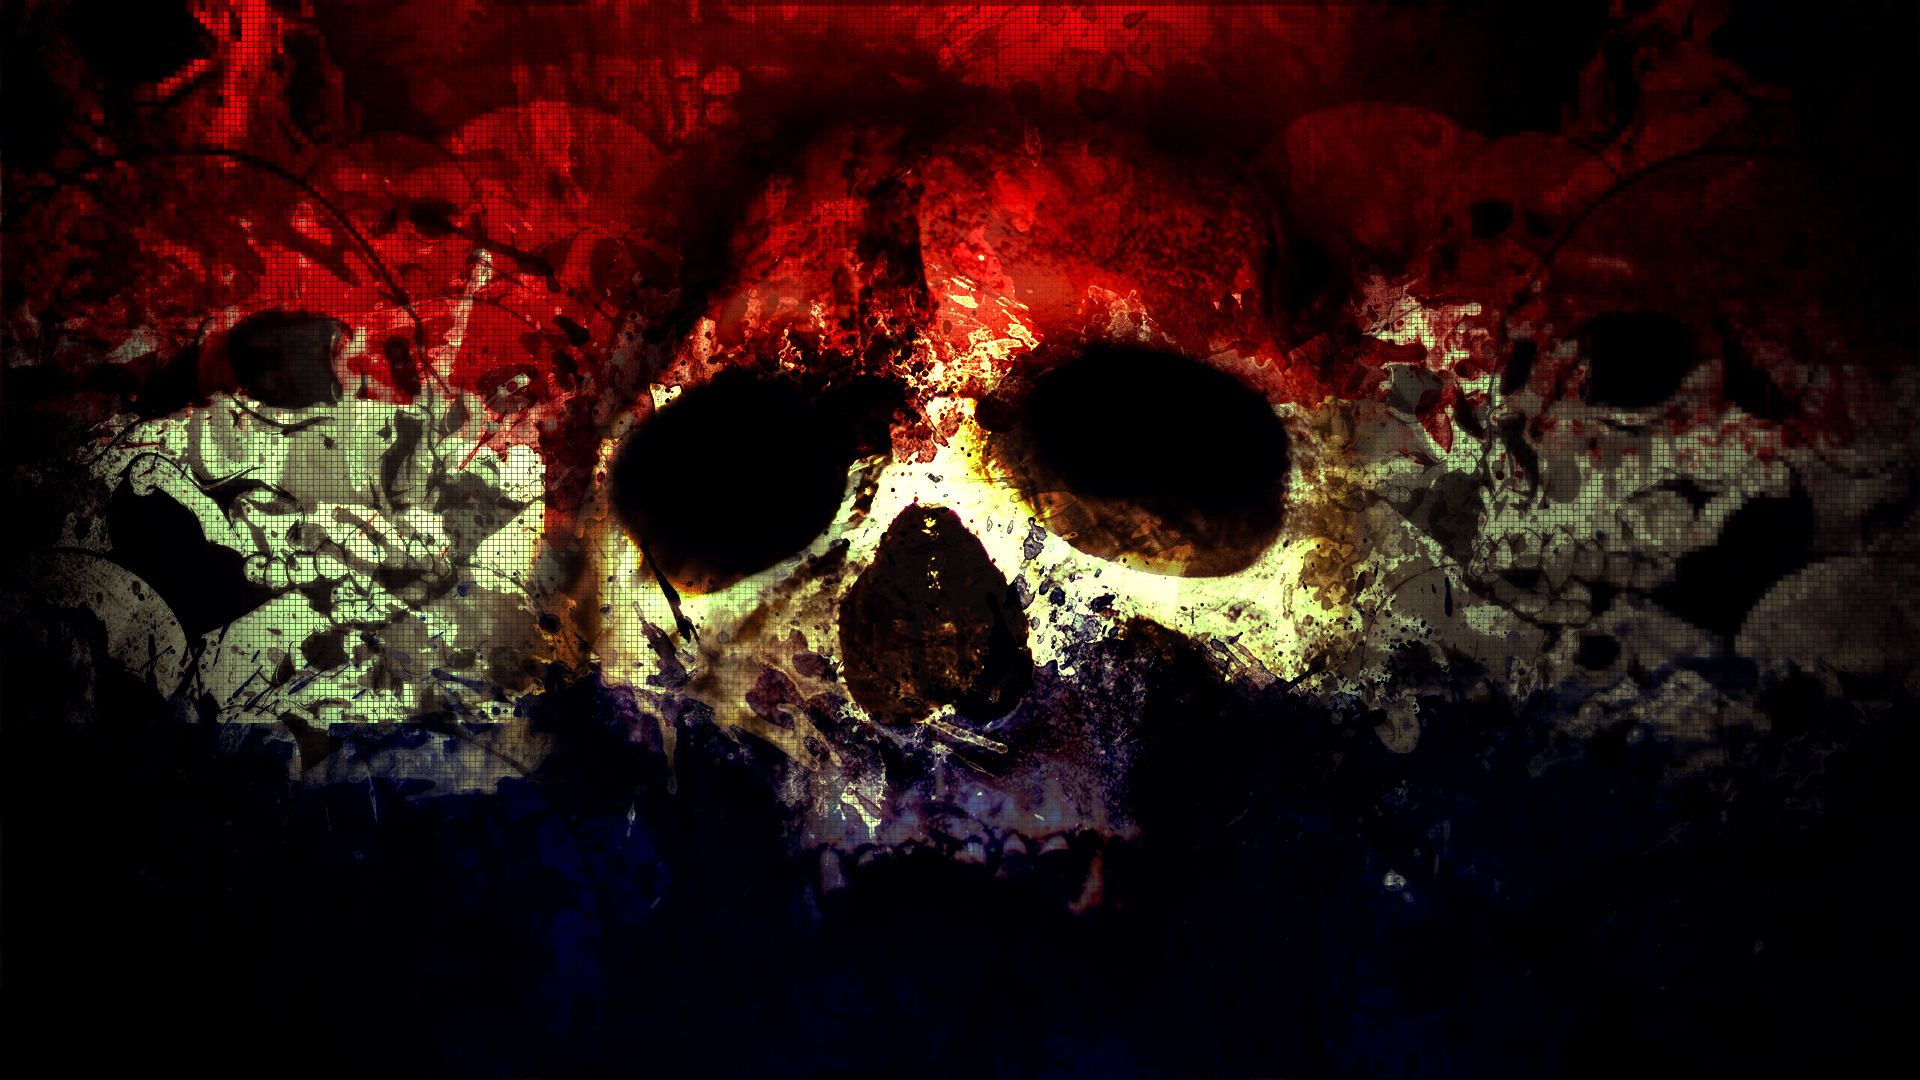 skull wallpapers red - hd desktop wallpapers | 4k hd